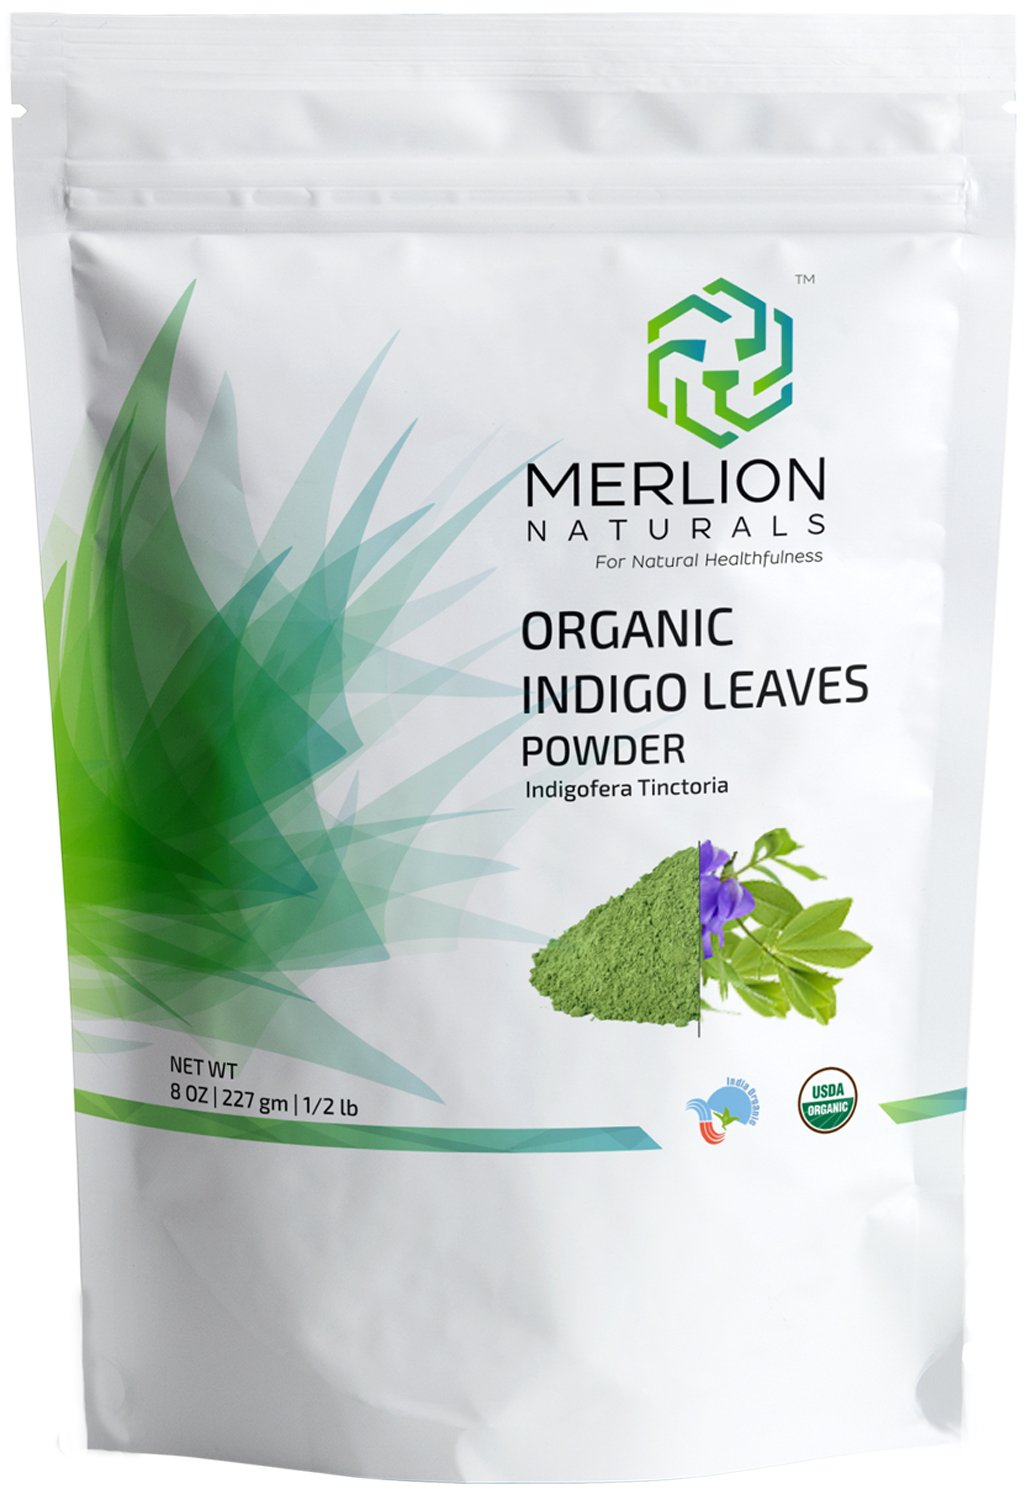 Organic Indigo Powder by MERLION NATURALS | Indigofera Tinctoria | USDA NOP Certified 100% Organic (8 OZ) by MERLION NATURALS